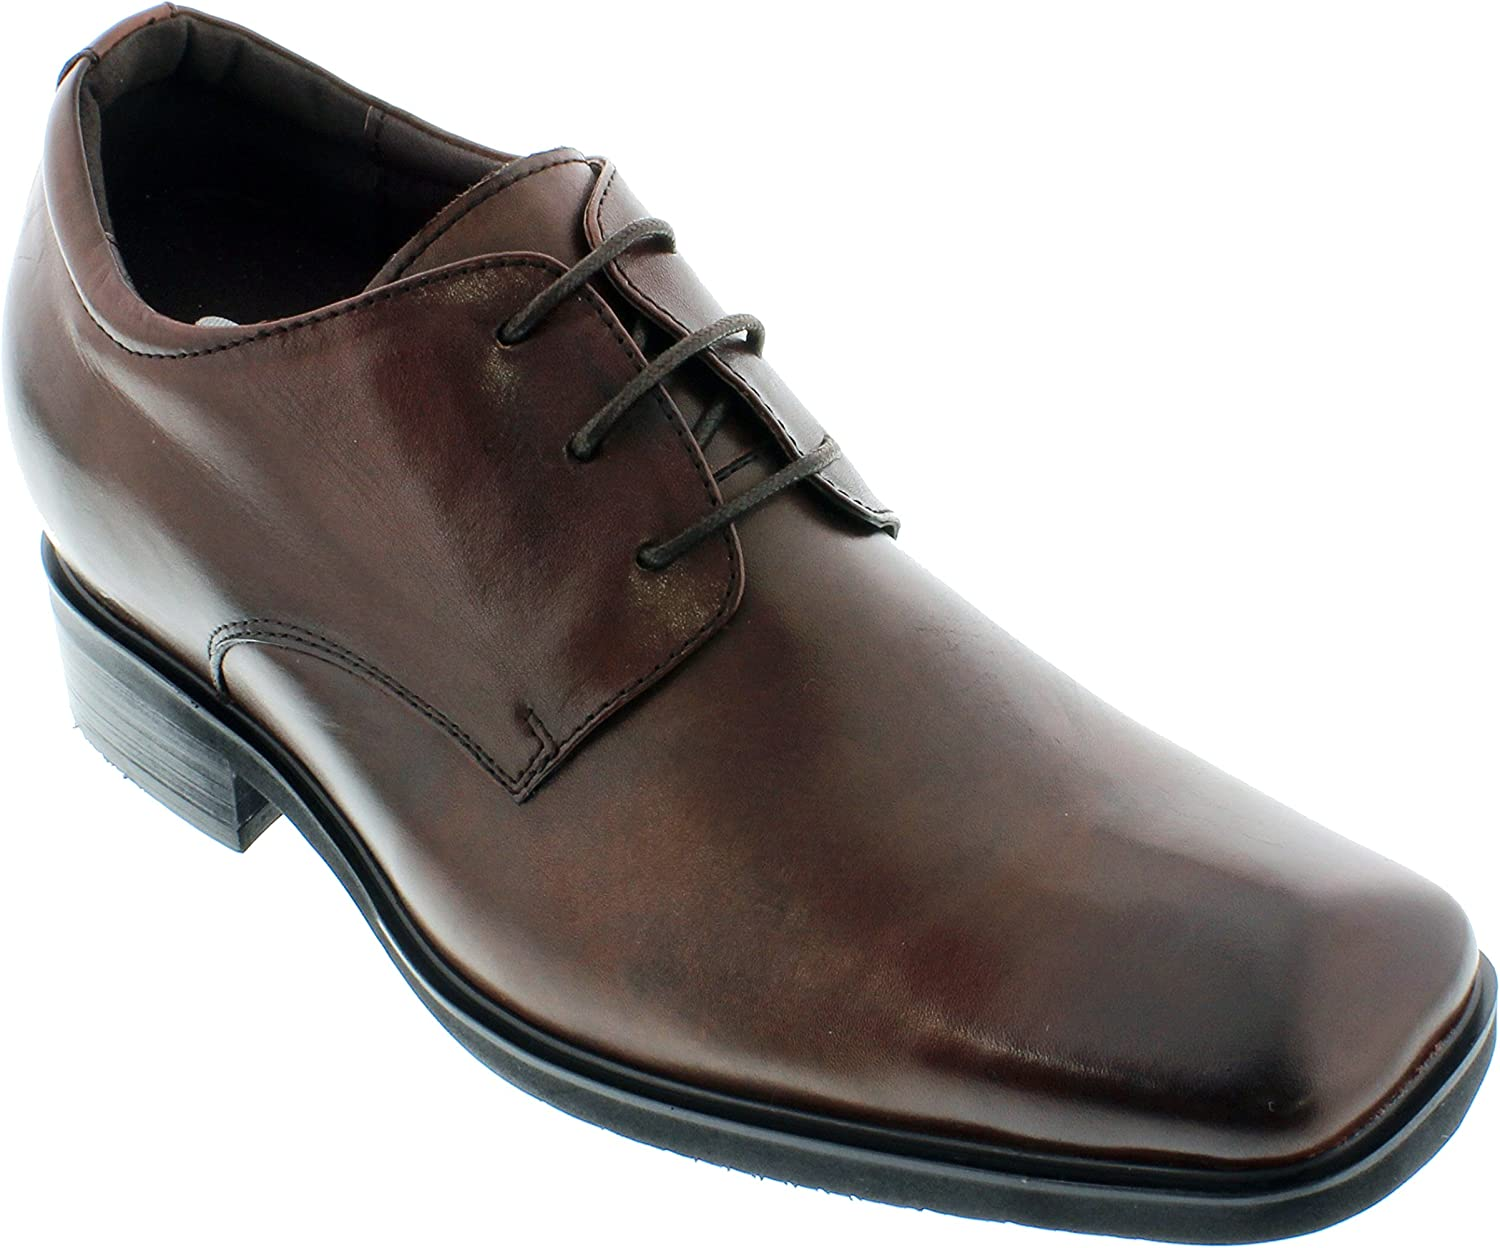 CALTO - G62323-3.6 Inches Taller - Height Increasing Elevator shoes (Dark Brown Lace-up Square-Toe)